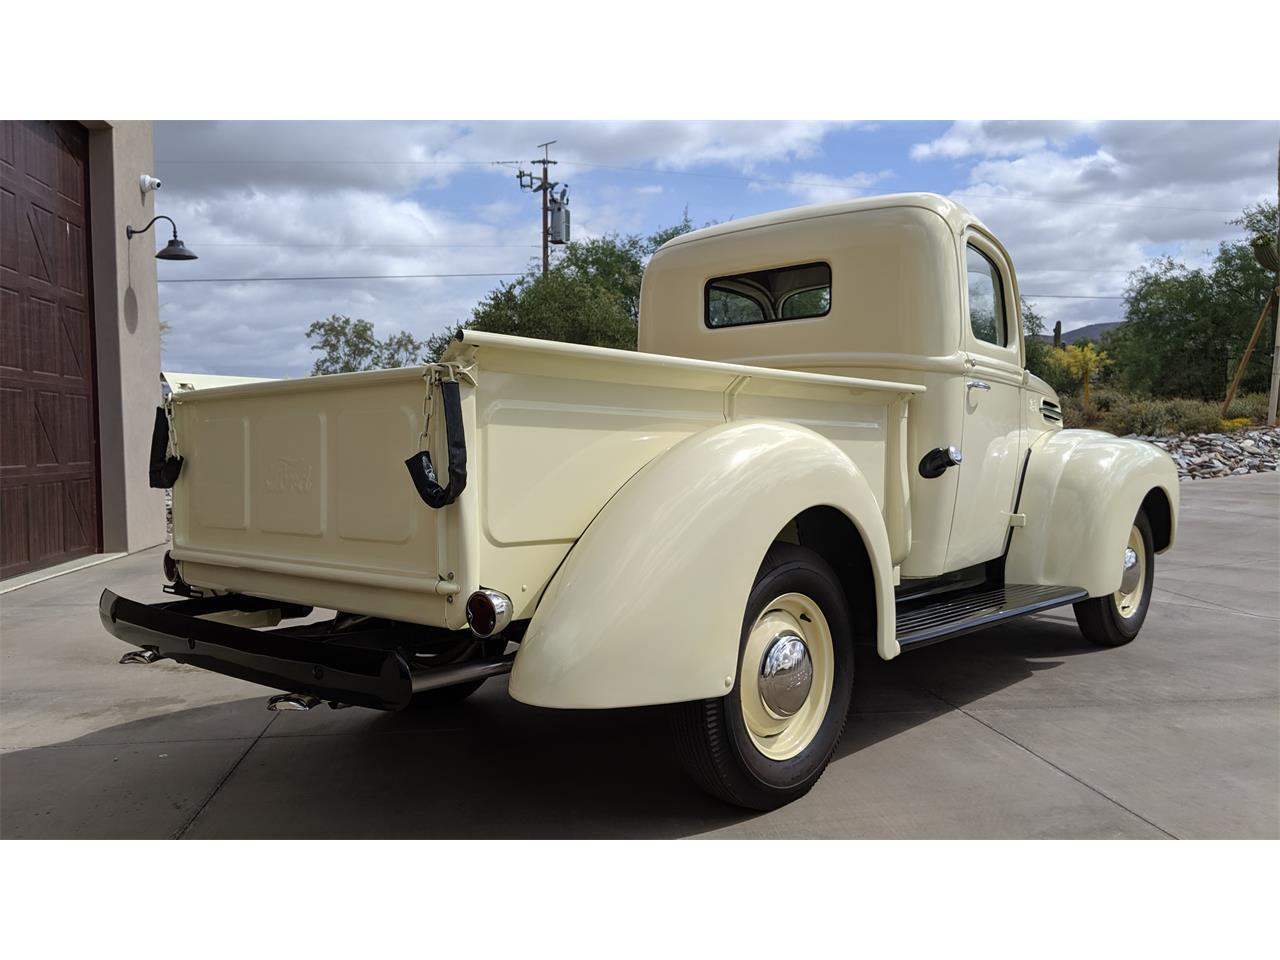 Large Picture of Classic 1945 Ford Pickup - $44,000.00 Offered by a Private Seller - OQVH